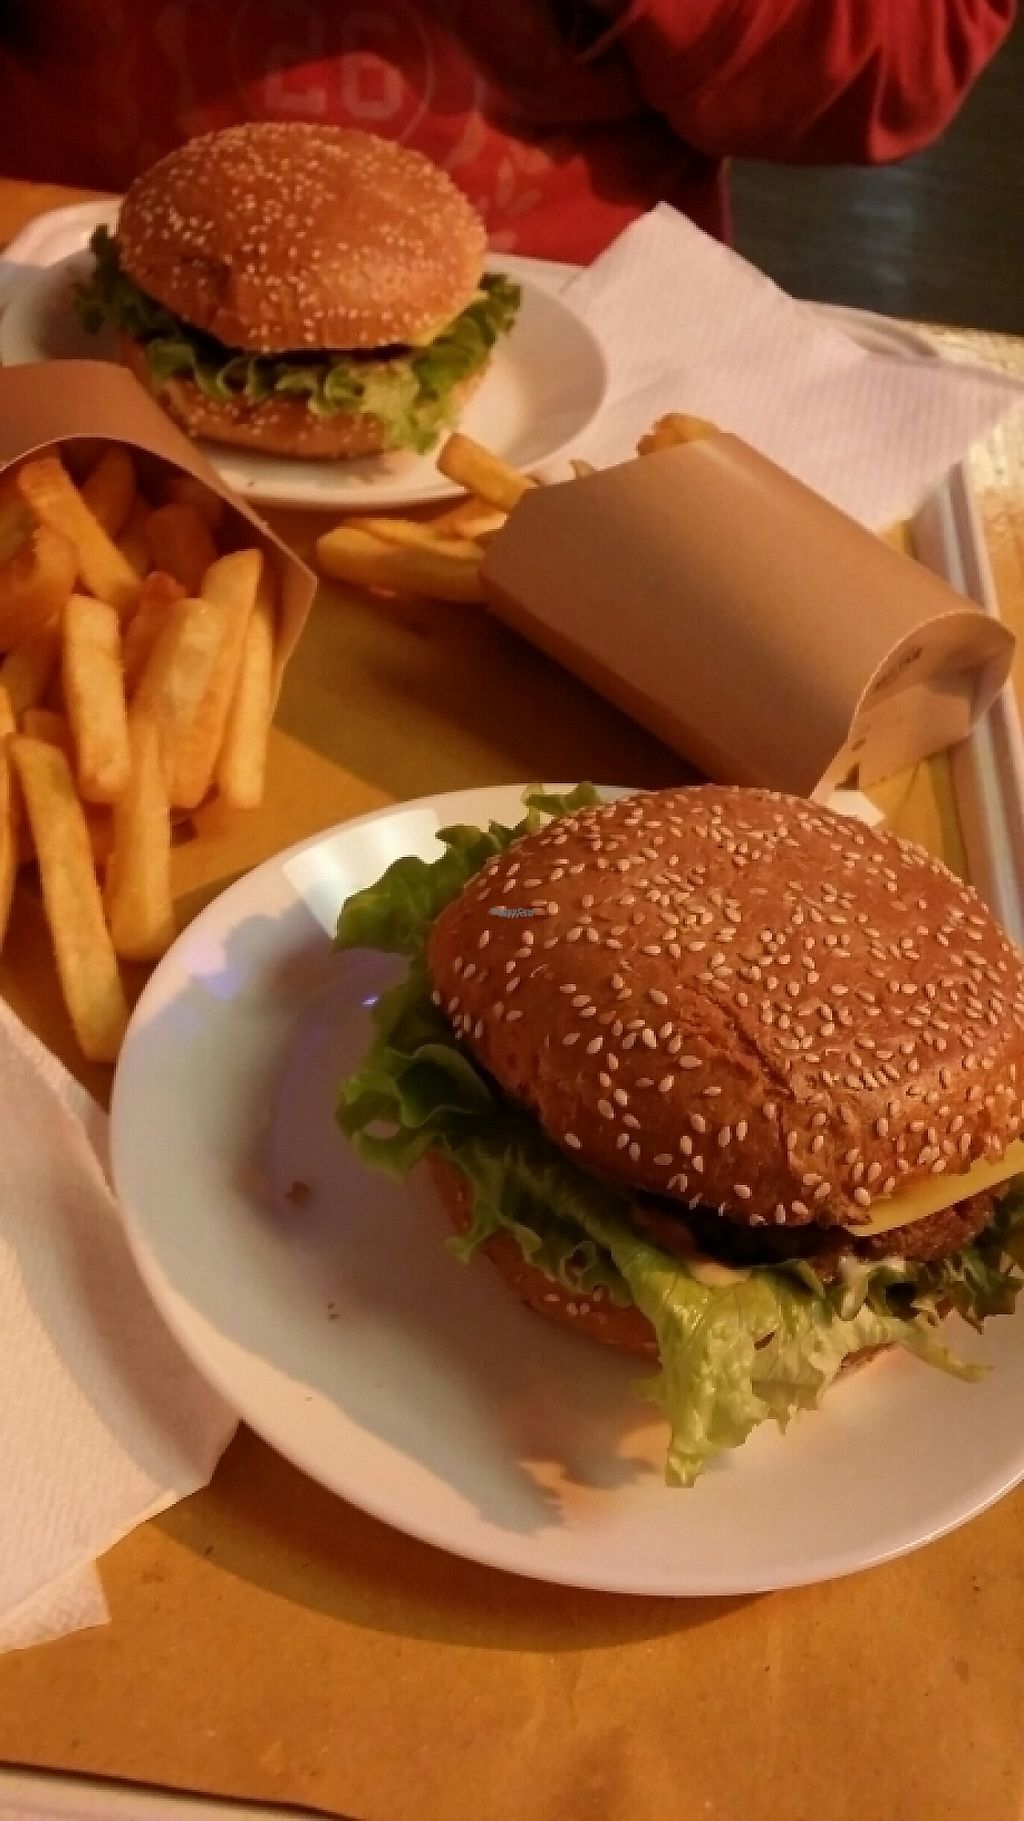 """Photo of Il Vegano - Firenze  by <a href=""""/members/profile/robinsorbom"""">robinsorbom</a> <br/>great burgers <br/> November 17, 2016  - <a href='/contact/abuse/image/54089/191363'>Report</a>"""